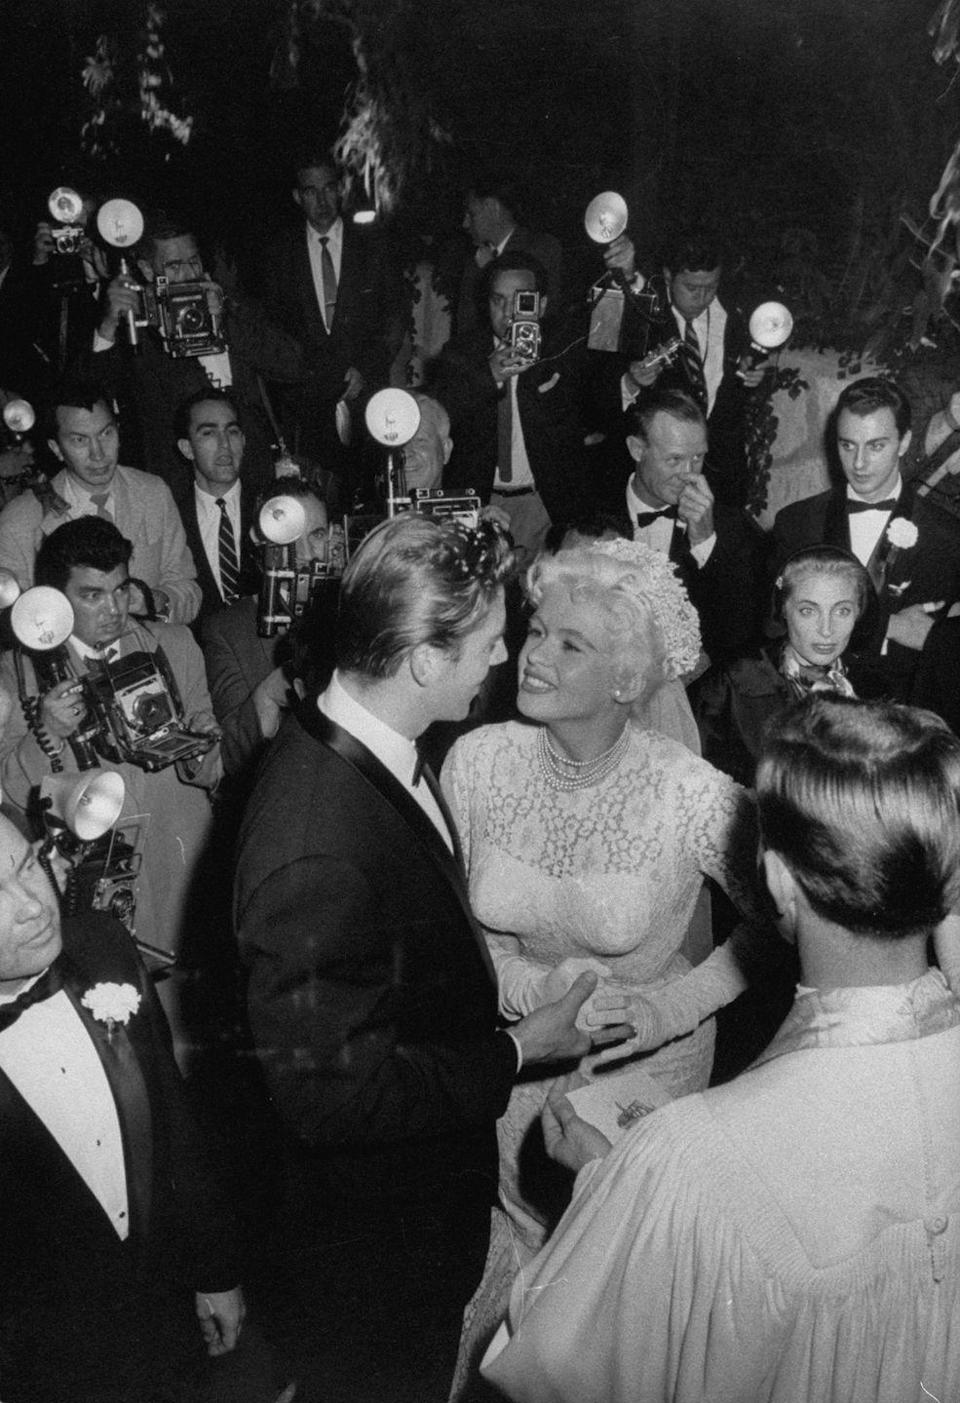 <p>Though her divorce from Paul Mansfield had only been finalized days before, actress Jayne Mansfield wed Mickey Hargitay on January 13, 1958. The Mr. Universe winner had proposed to her with 10-carat diamond ring just two months prior.</p>